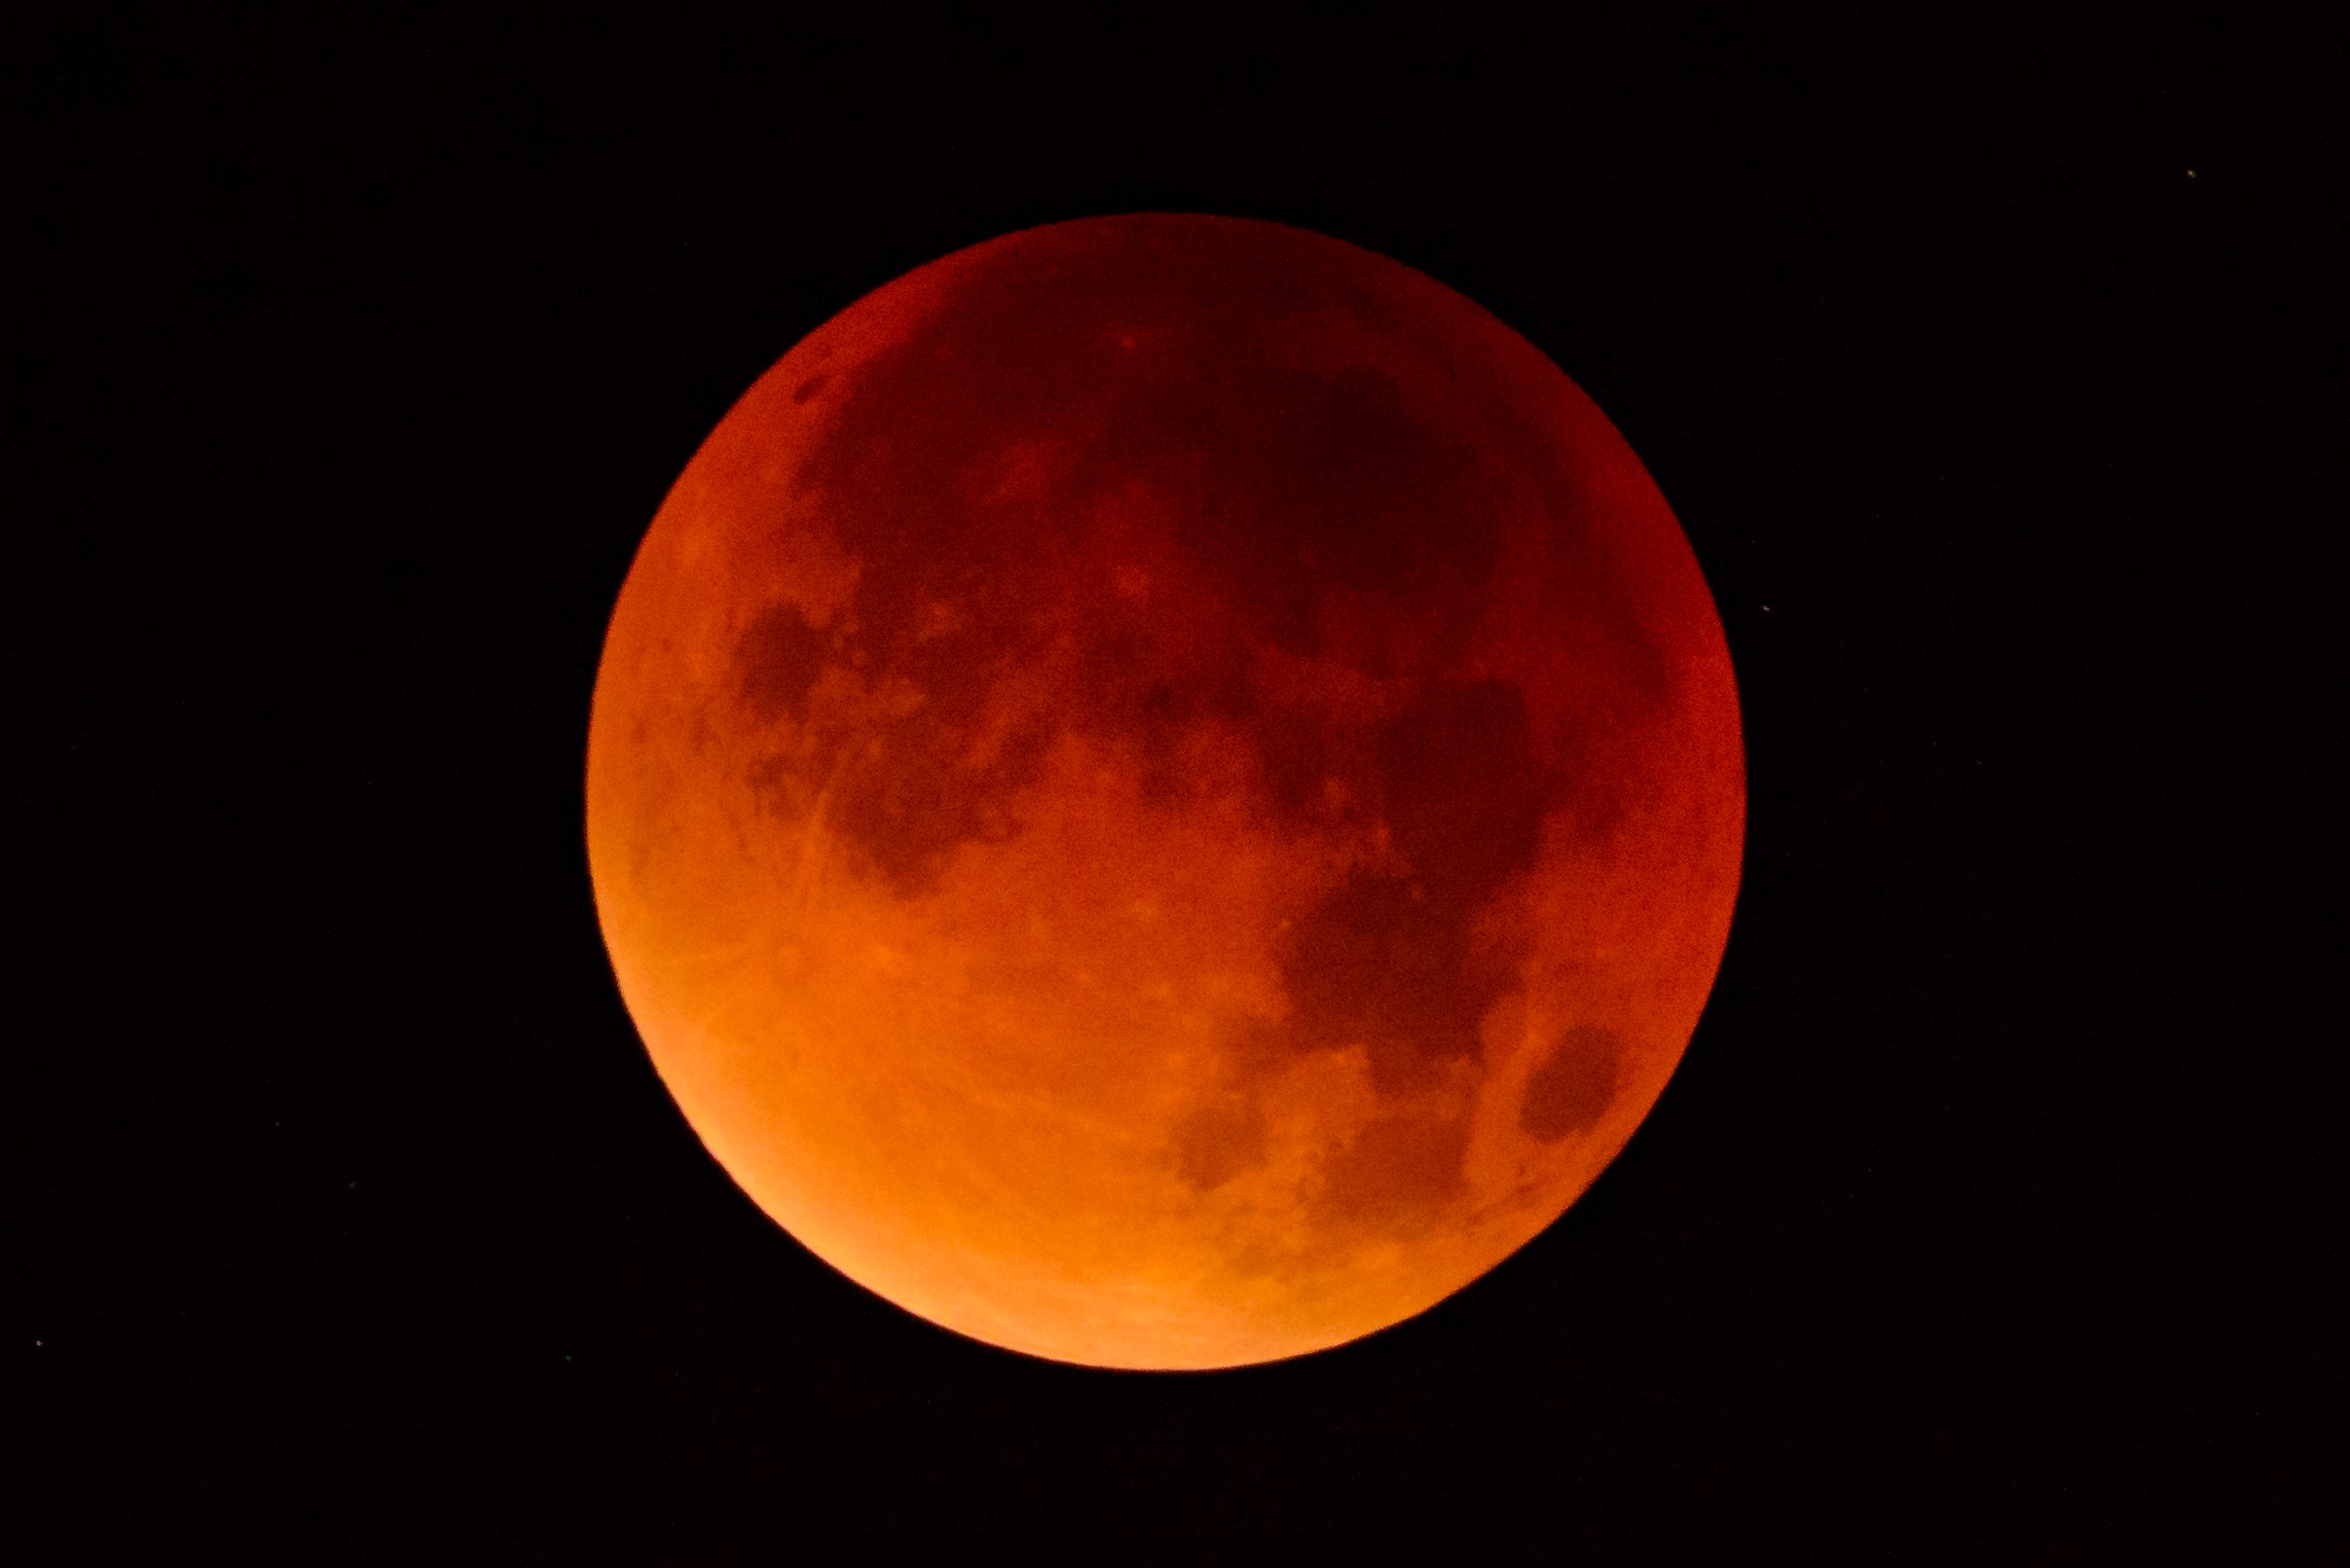 blood moon july 2018 europe - photo #38